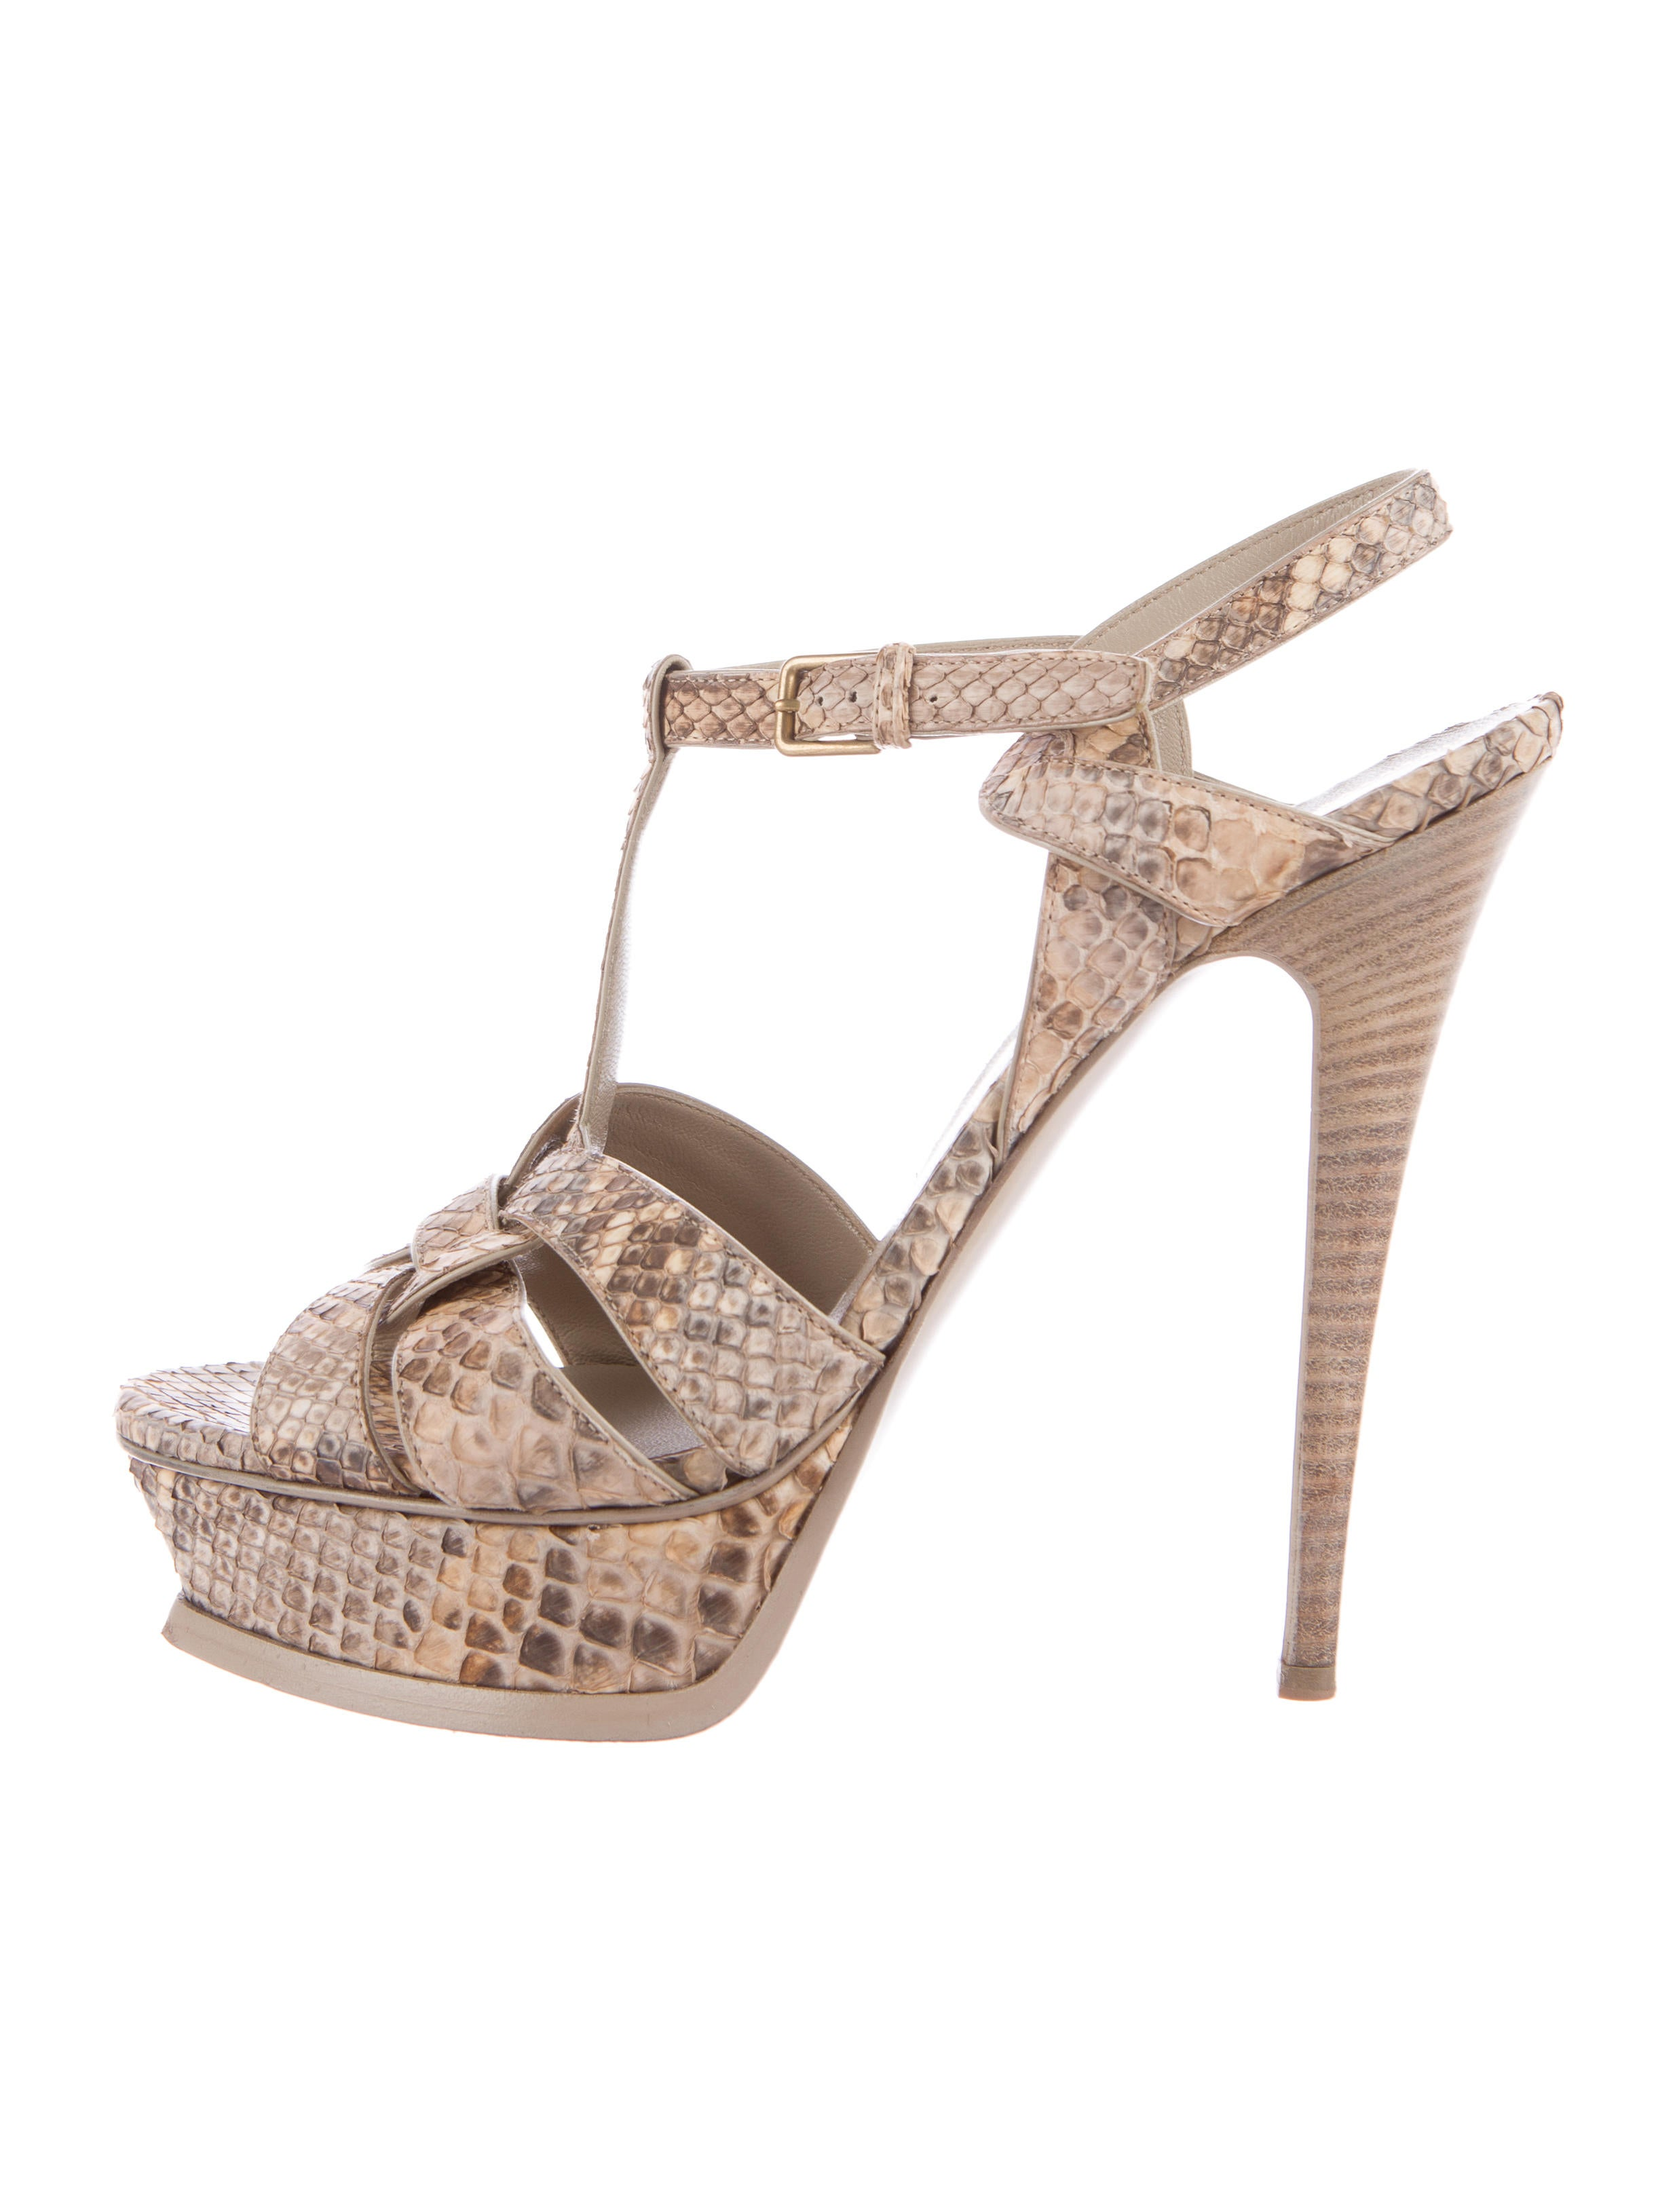 Yves Saint Laurent Tribute Snakeskin Platform Sandals sale pay with paypal sale discount discount price wyceU8